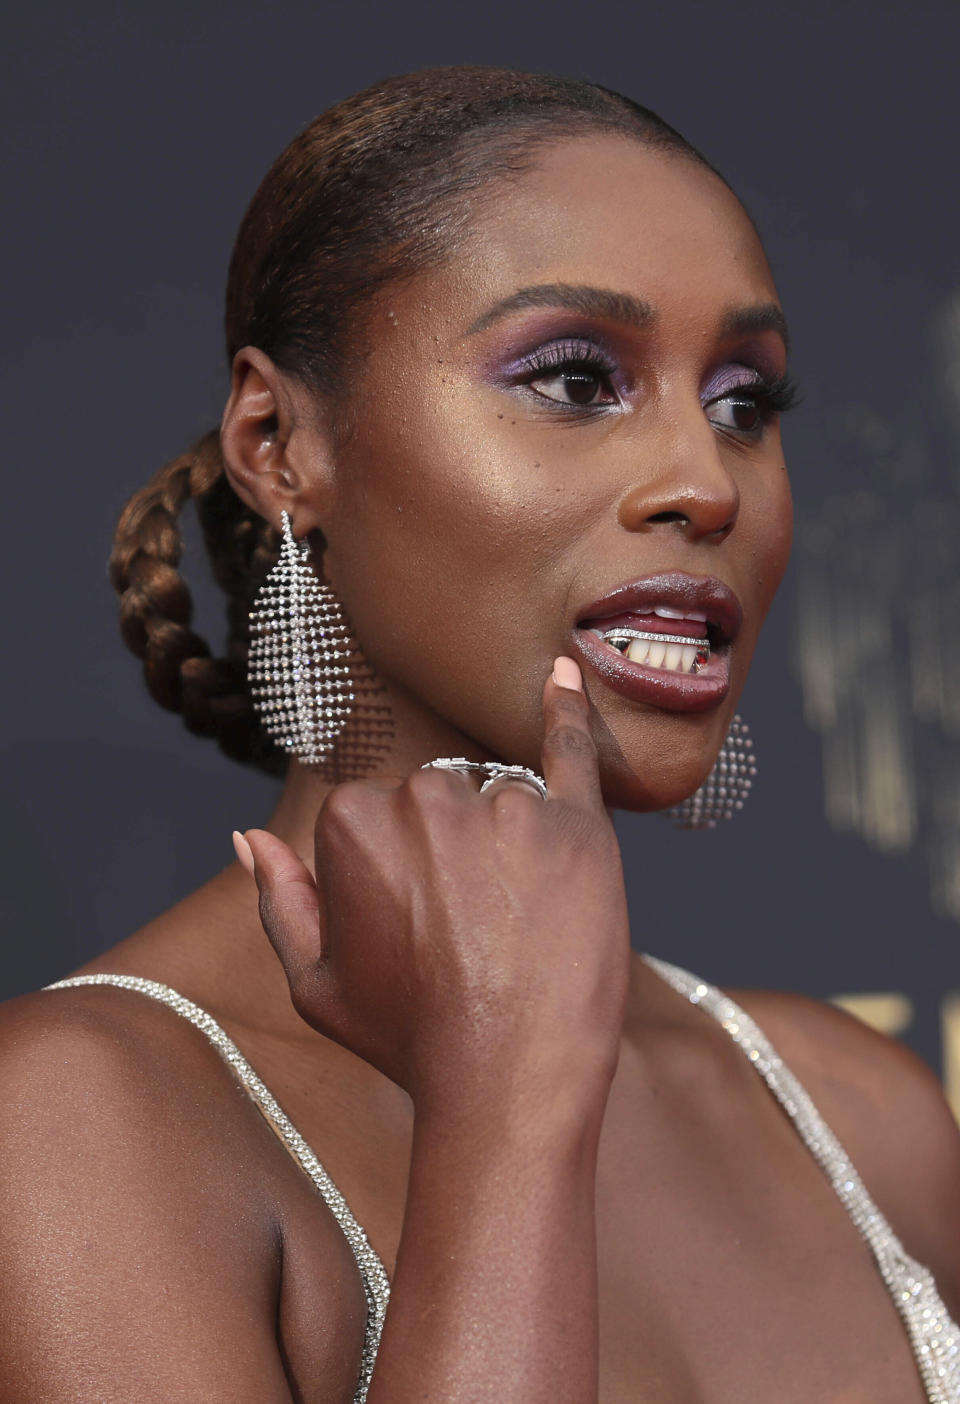 Issa Rae arrives at the 73rd Emmy Awards at the JW Marriott on Sept. 19, 2021, at L.A. LIVE in Los Angeles. - Credit: Danny Moloshok/Invision/AP